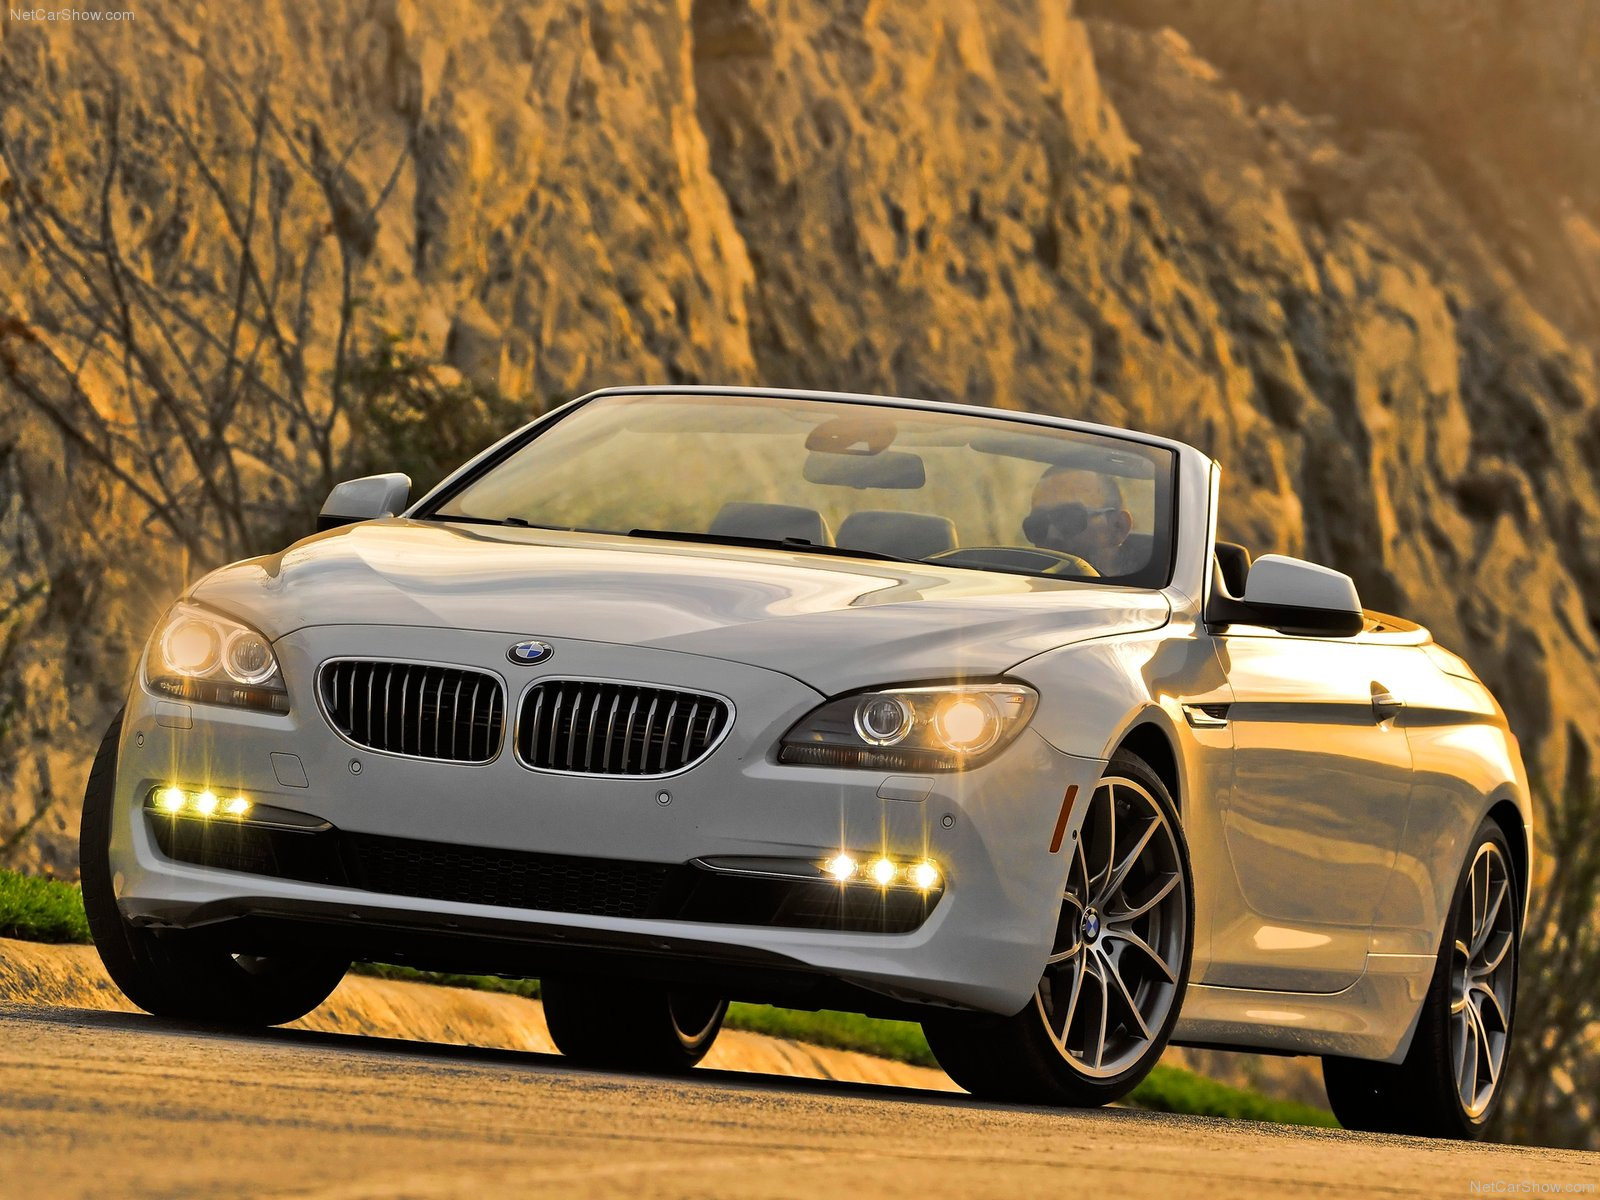 BMW 6-series F13 Convertible photo 81143